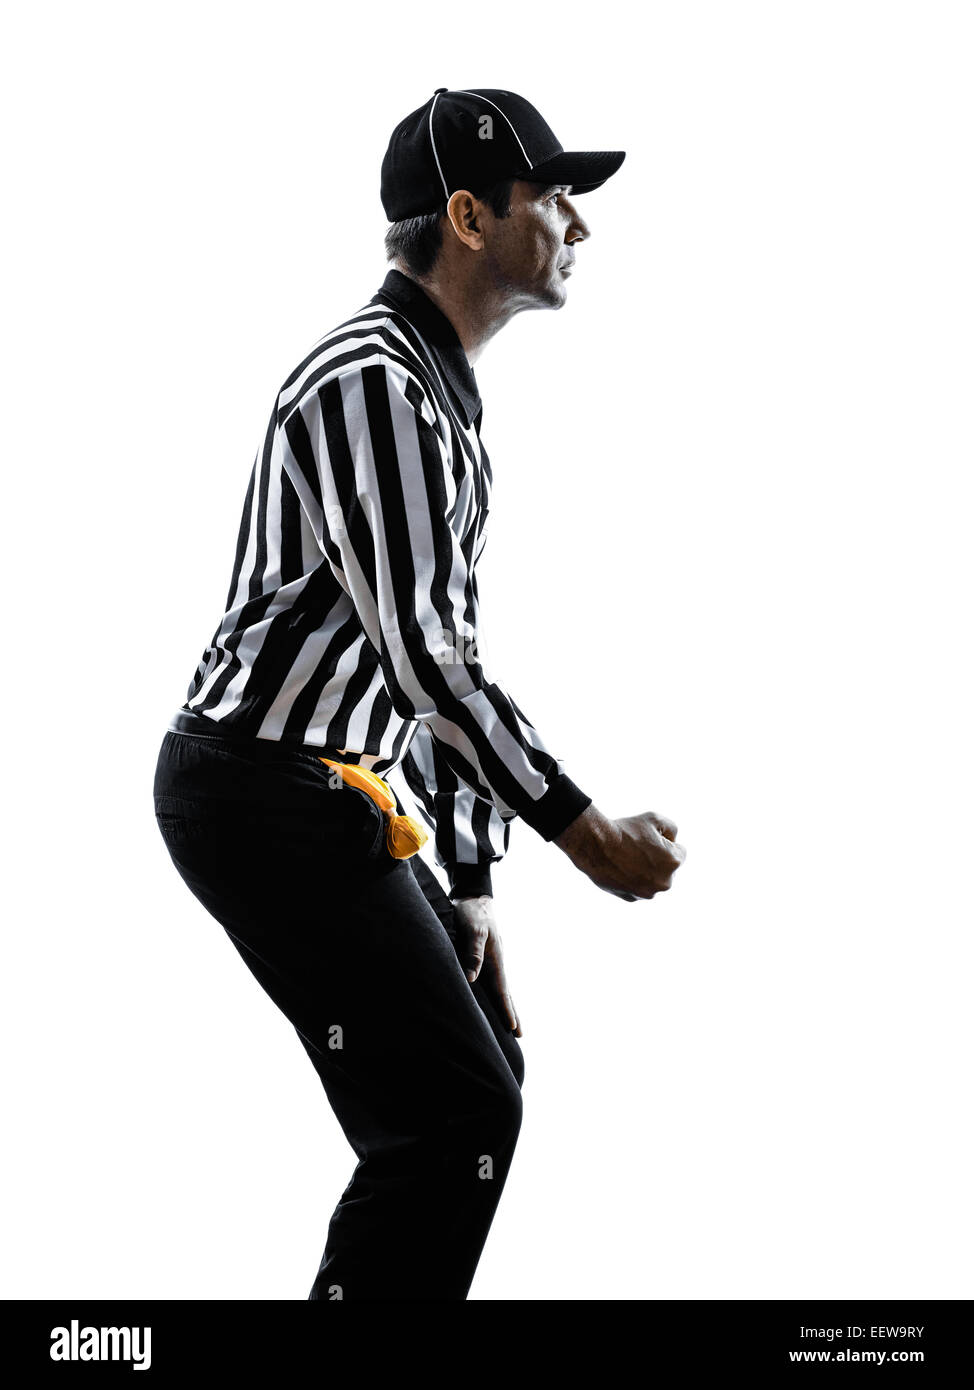 american football referee gestures clipping in silhouette on white background - Stock Image